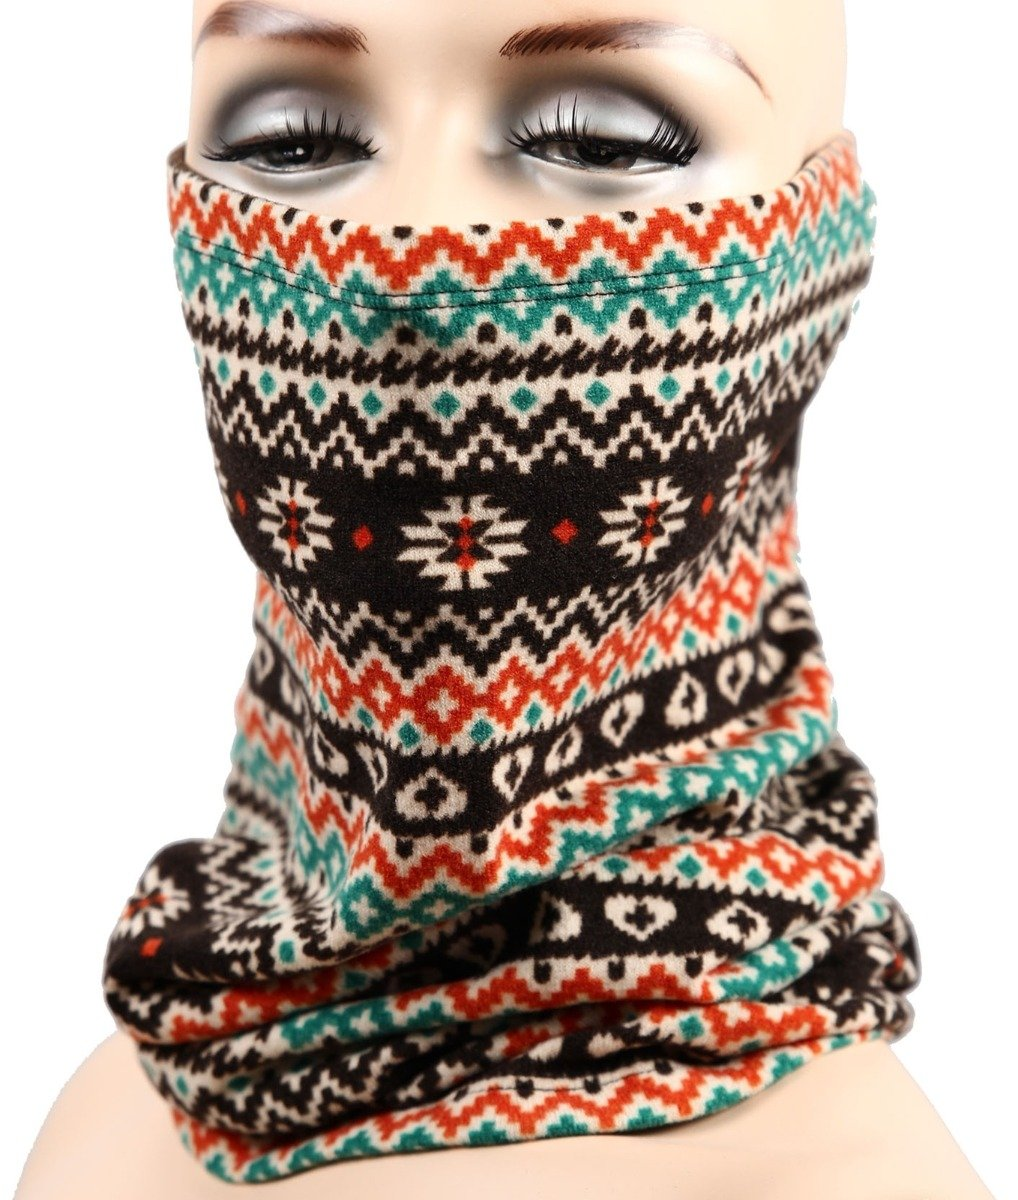 Neck Warmer Womens Mens Snood Face Mask Neck Gaiter Turtle Neck Warmer SNMF-1003 Cordiart